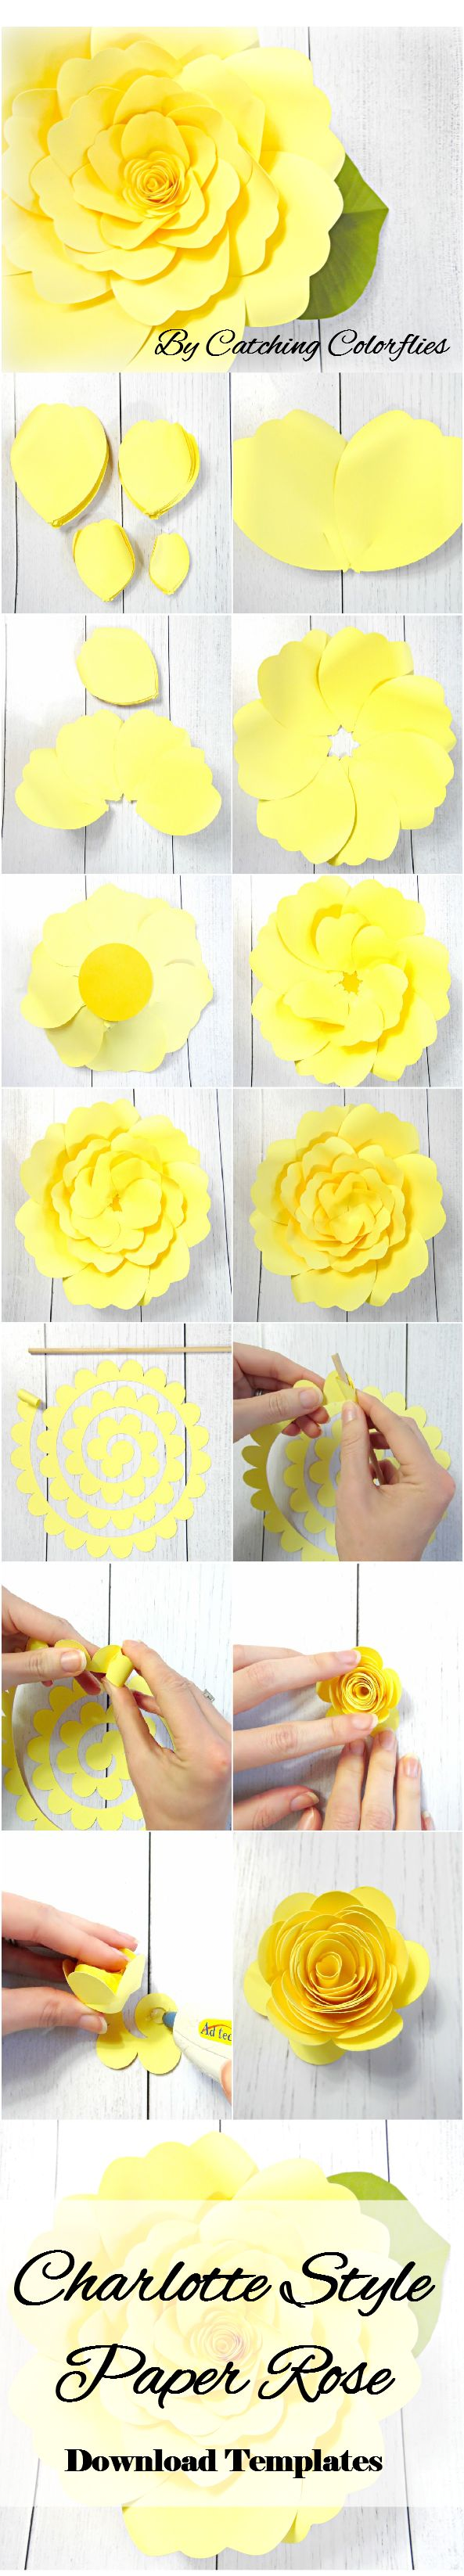 The 25 best paper flower templates ideas on pinterest paper giant paper flower tutorial with templates diy paper flower templates paper flower svg files dhlflorist Choice Image